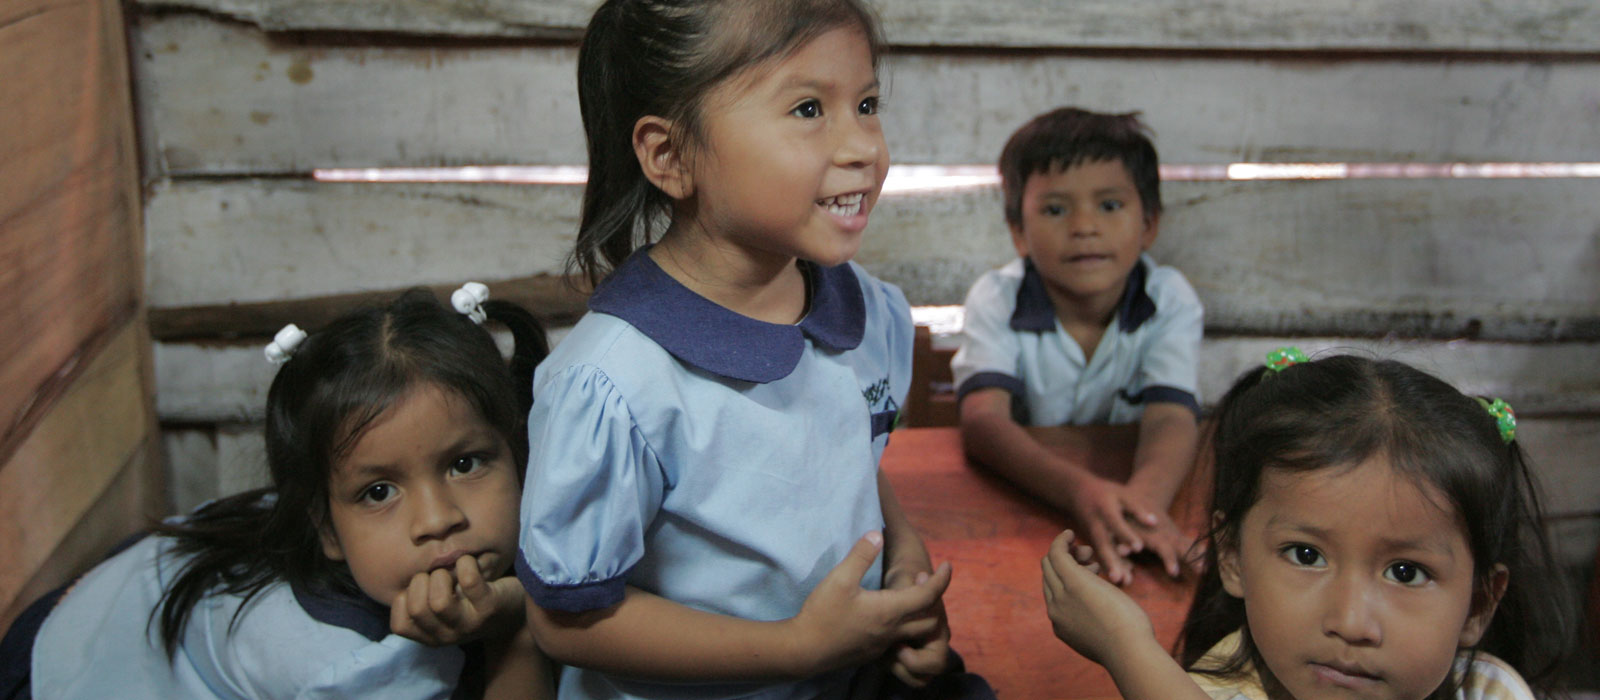 Young children at a school in Peru. Photo by Young Lives / Lucero Del Castillo Ames